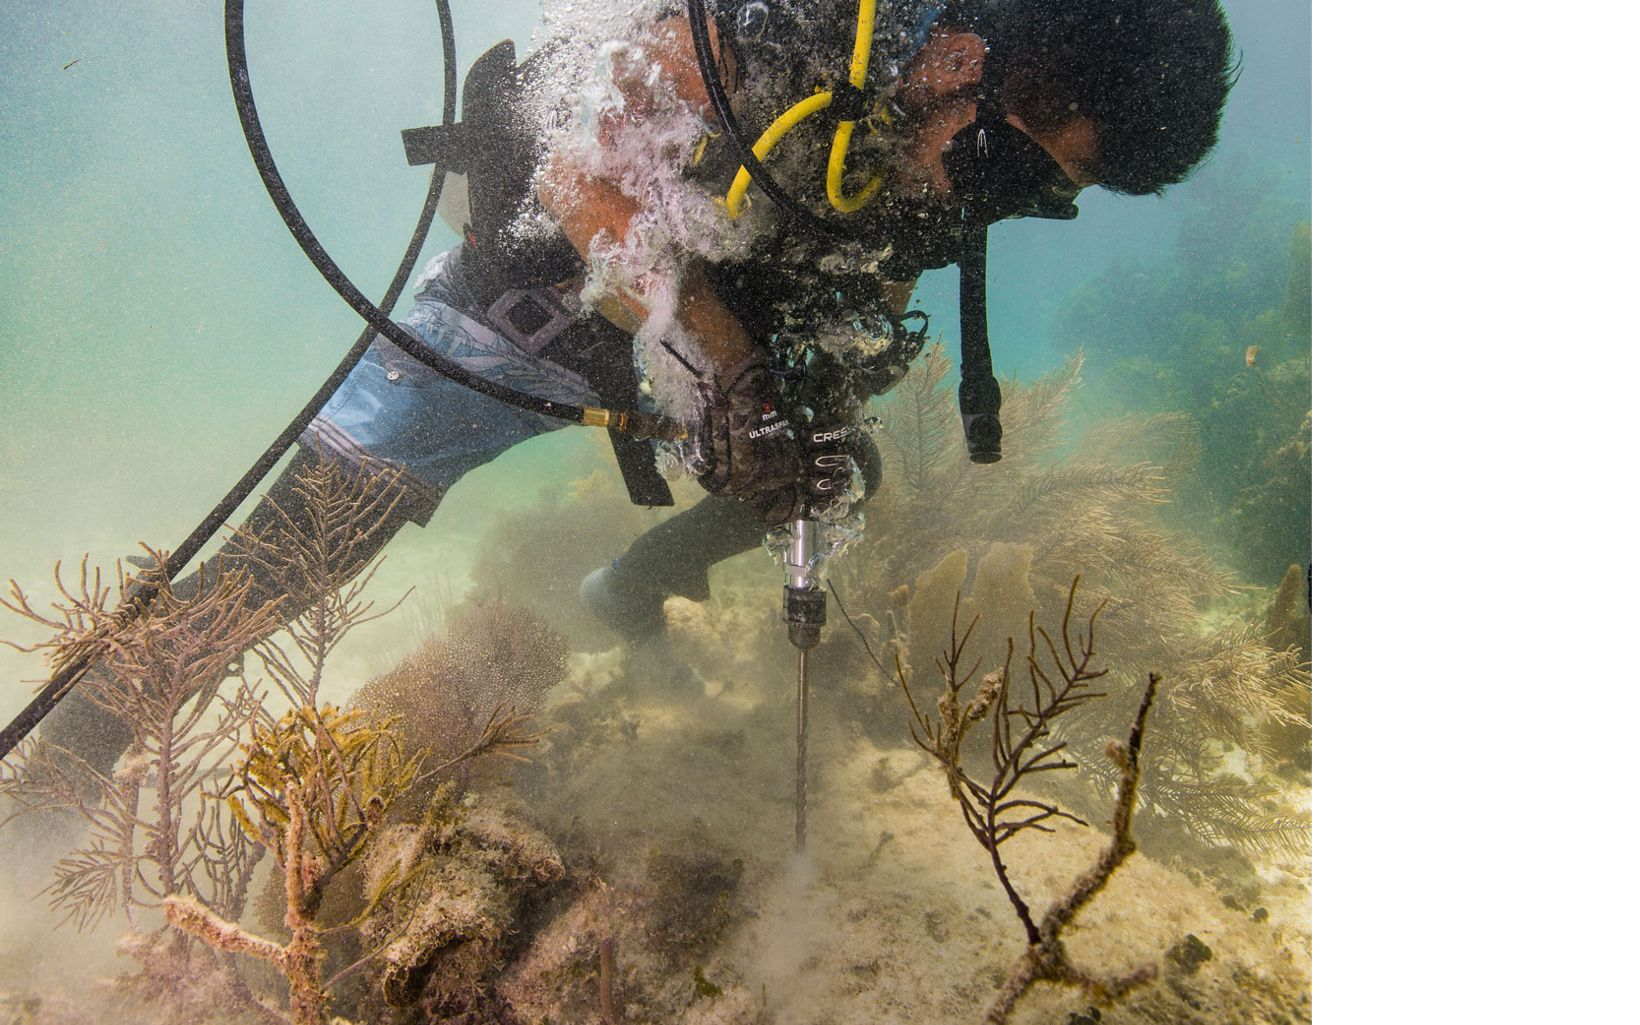 A diver practices using a drill underwater to attach supports that will be used to reattach a piece of broken coral.